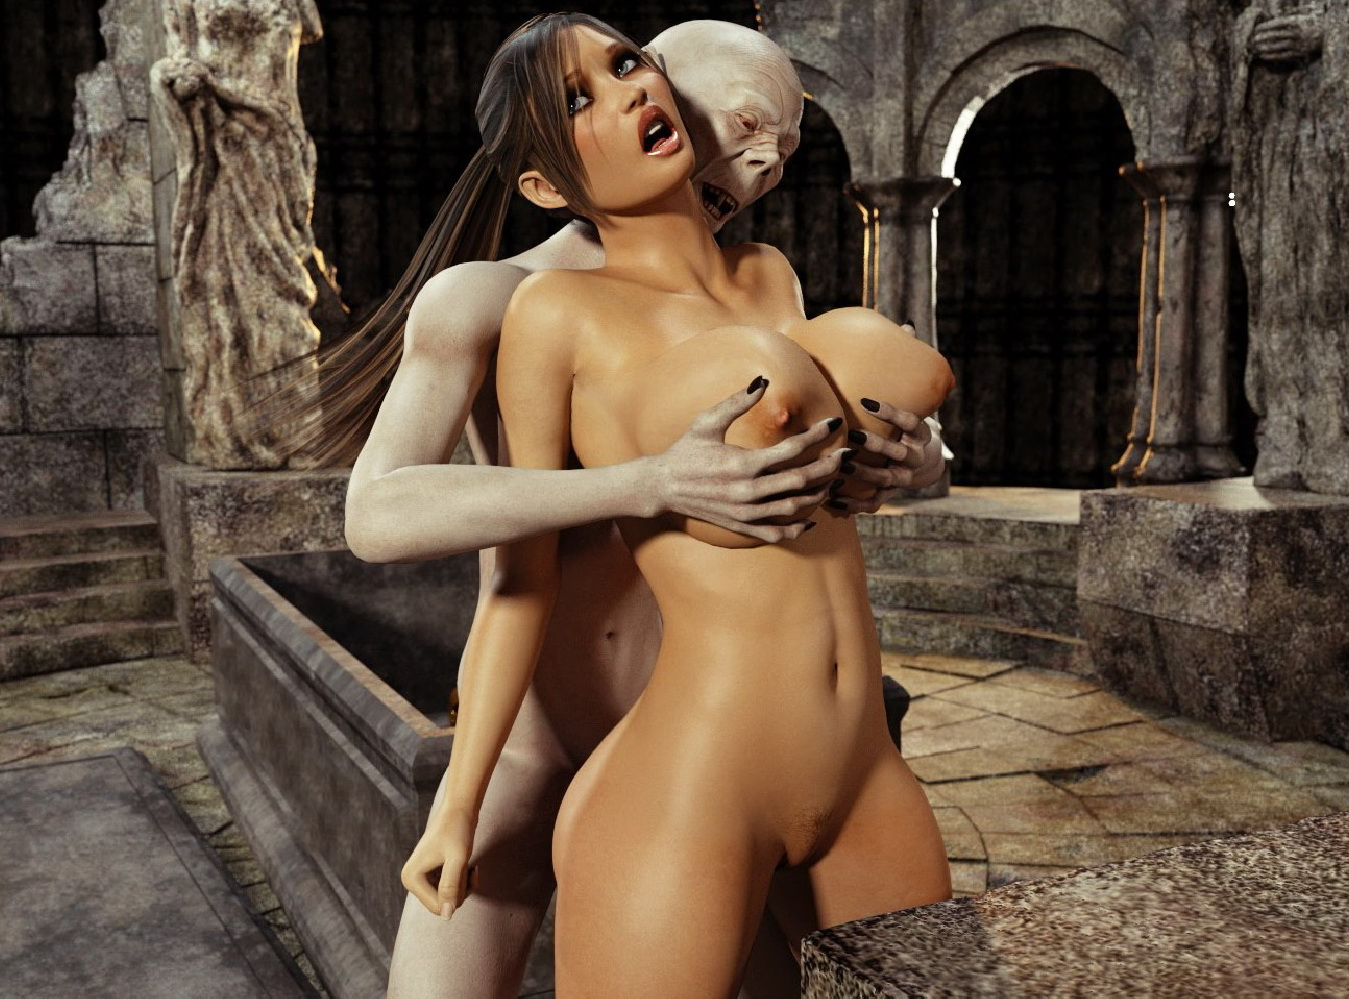 Tomb raider and vampire hentai sexy chick